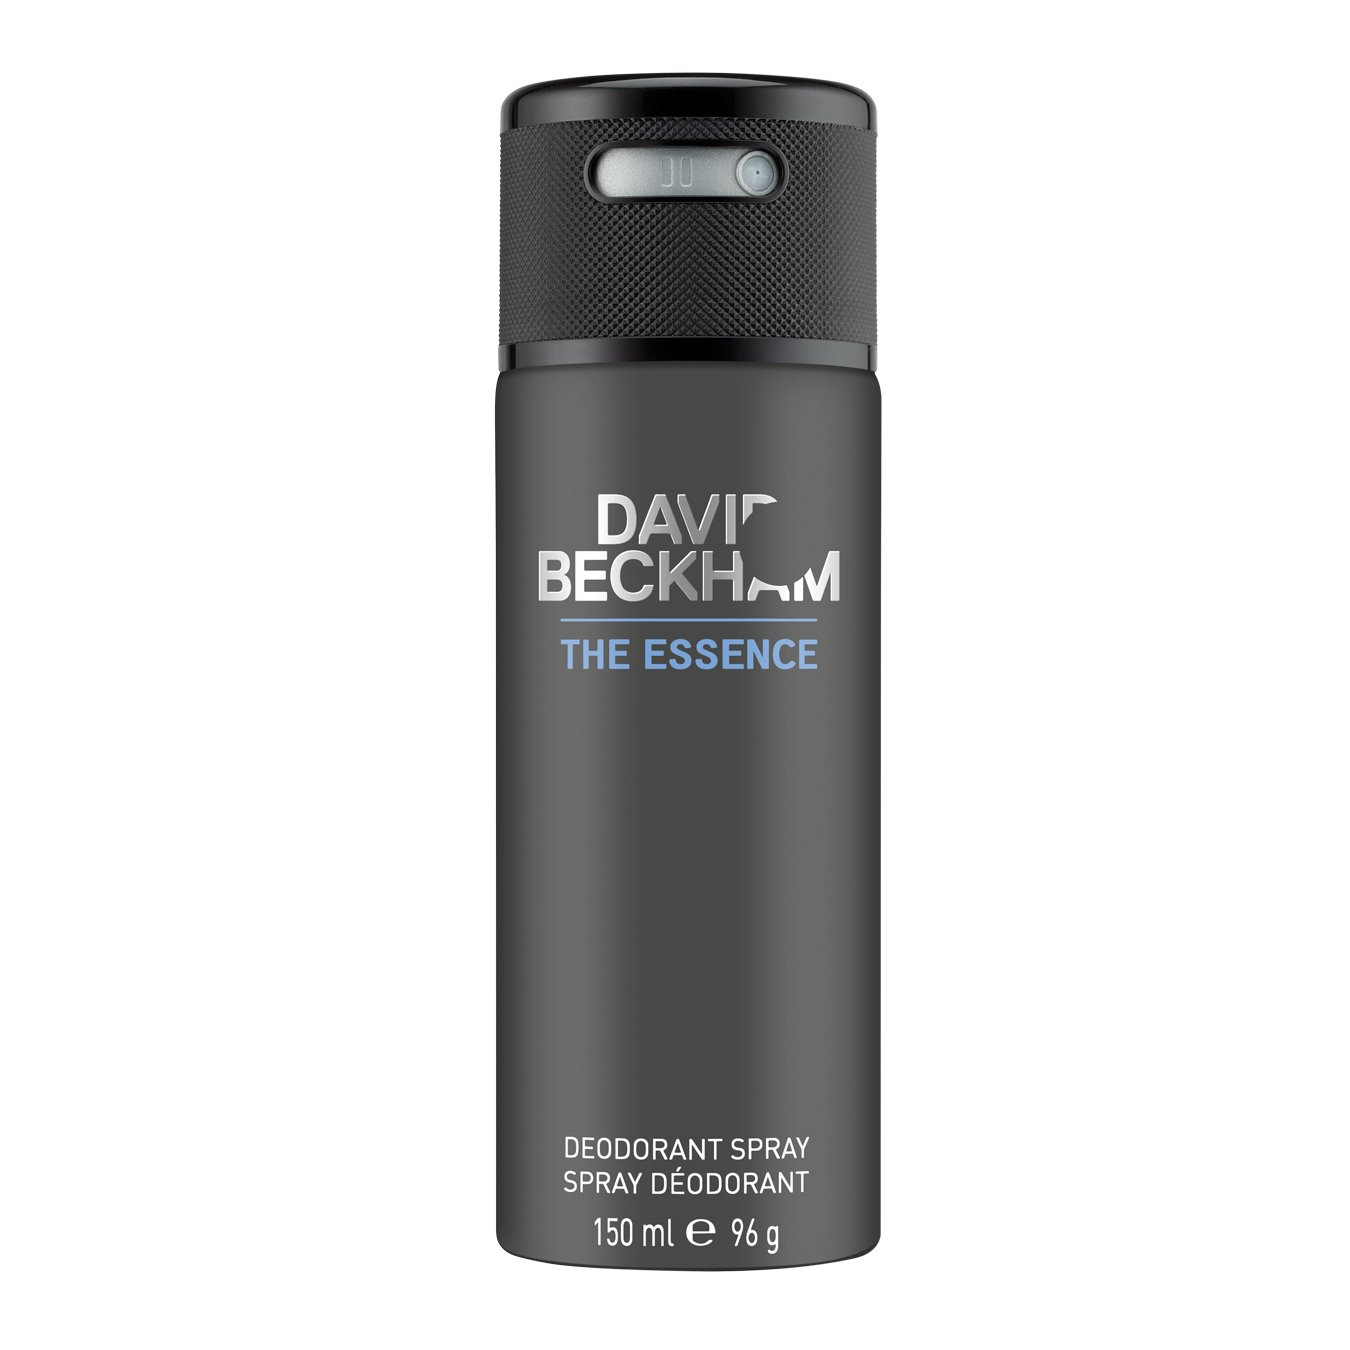 Beckham Essence Body Spray for Men 150ml David Beckham Skin Care Products